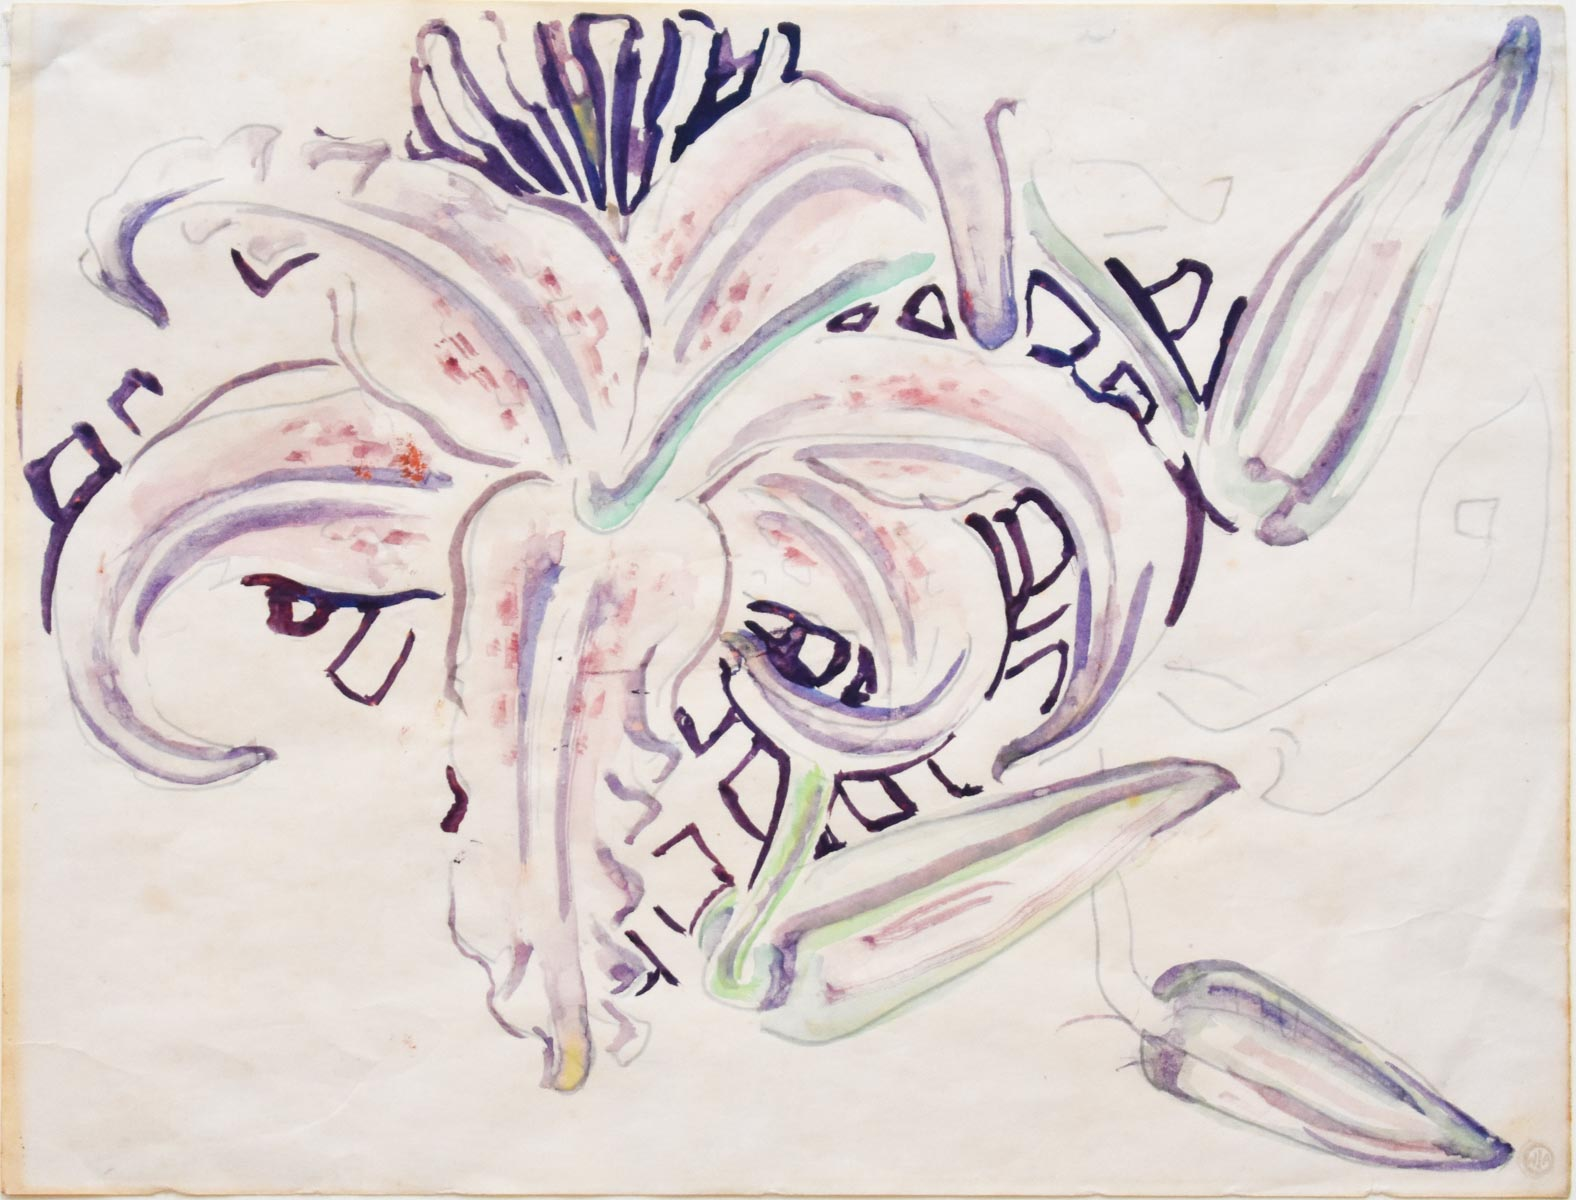 Walter Inglis Anderson(American, 1903-1965)  Tiger Lily,  c. 1960,  watercolor and pencil on paper, estate stamped lower right, titled and dated en verso, 8 3/8 x 11 in., unframed.